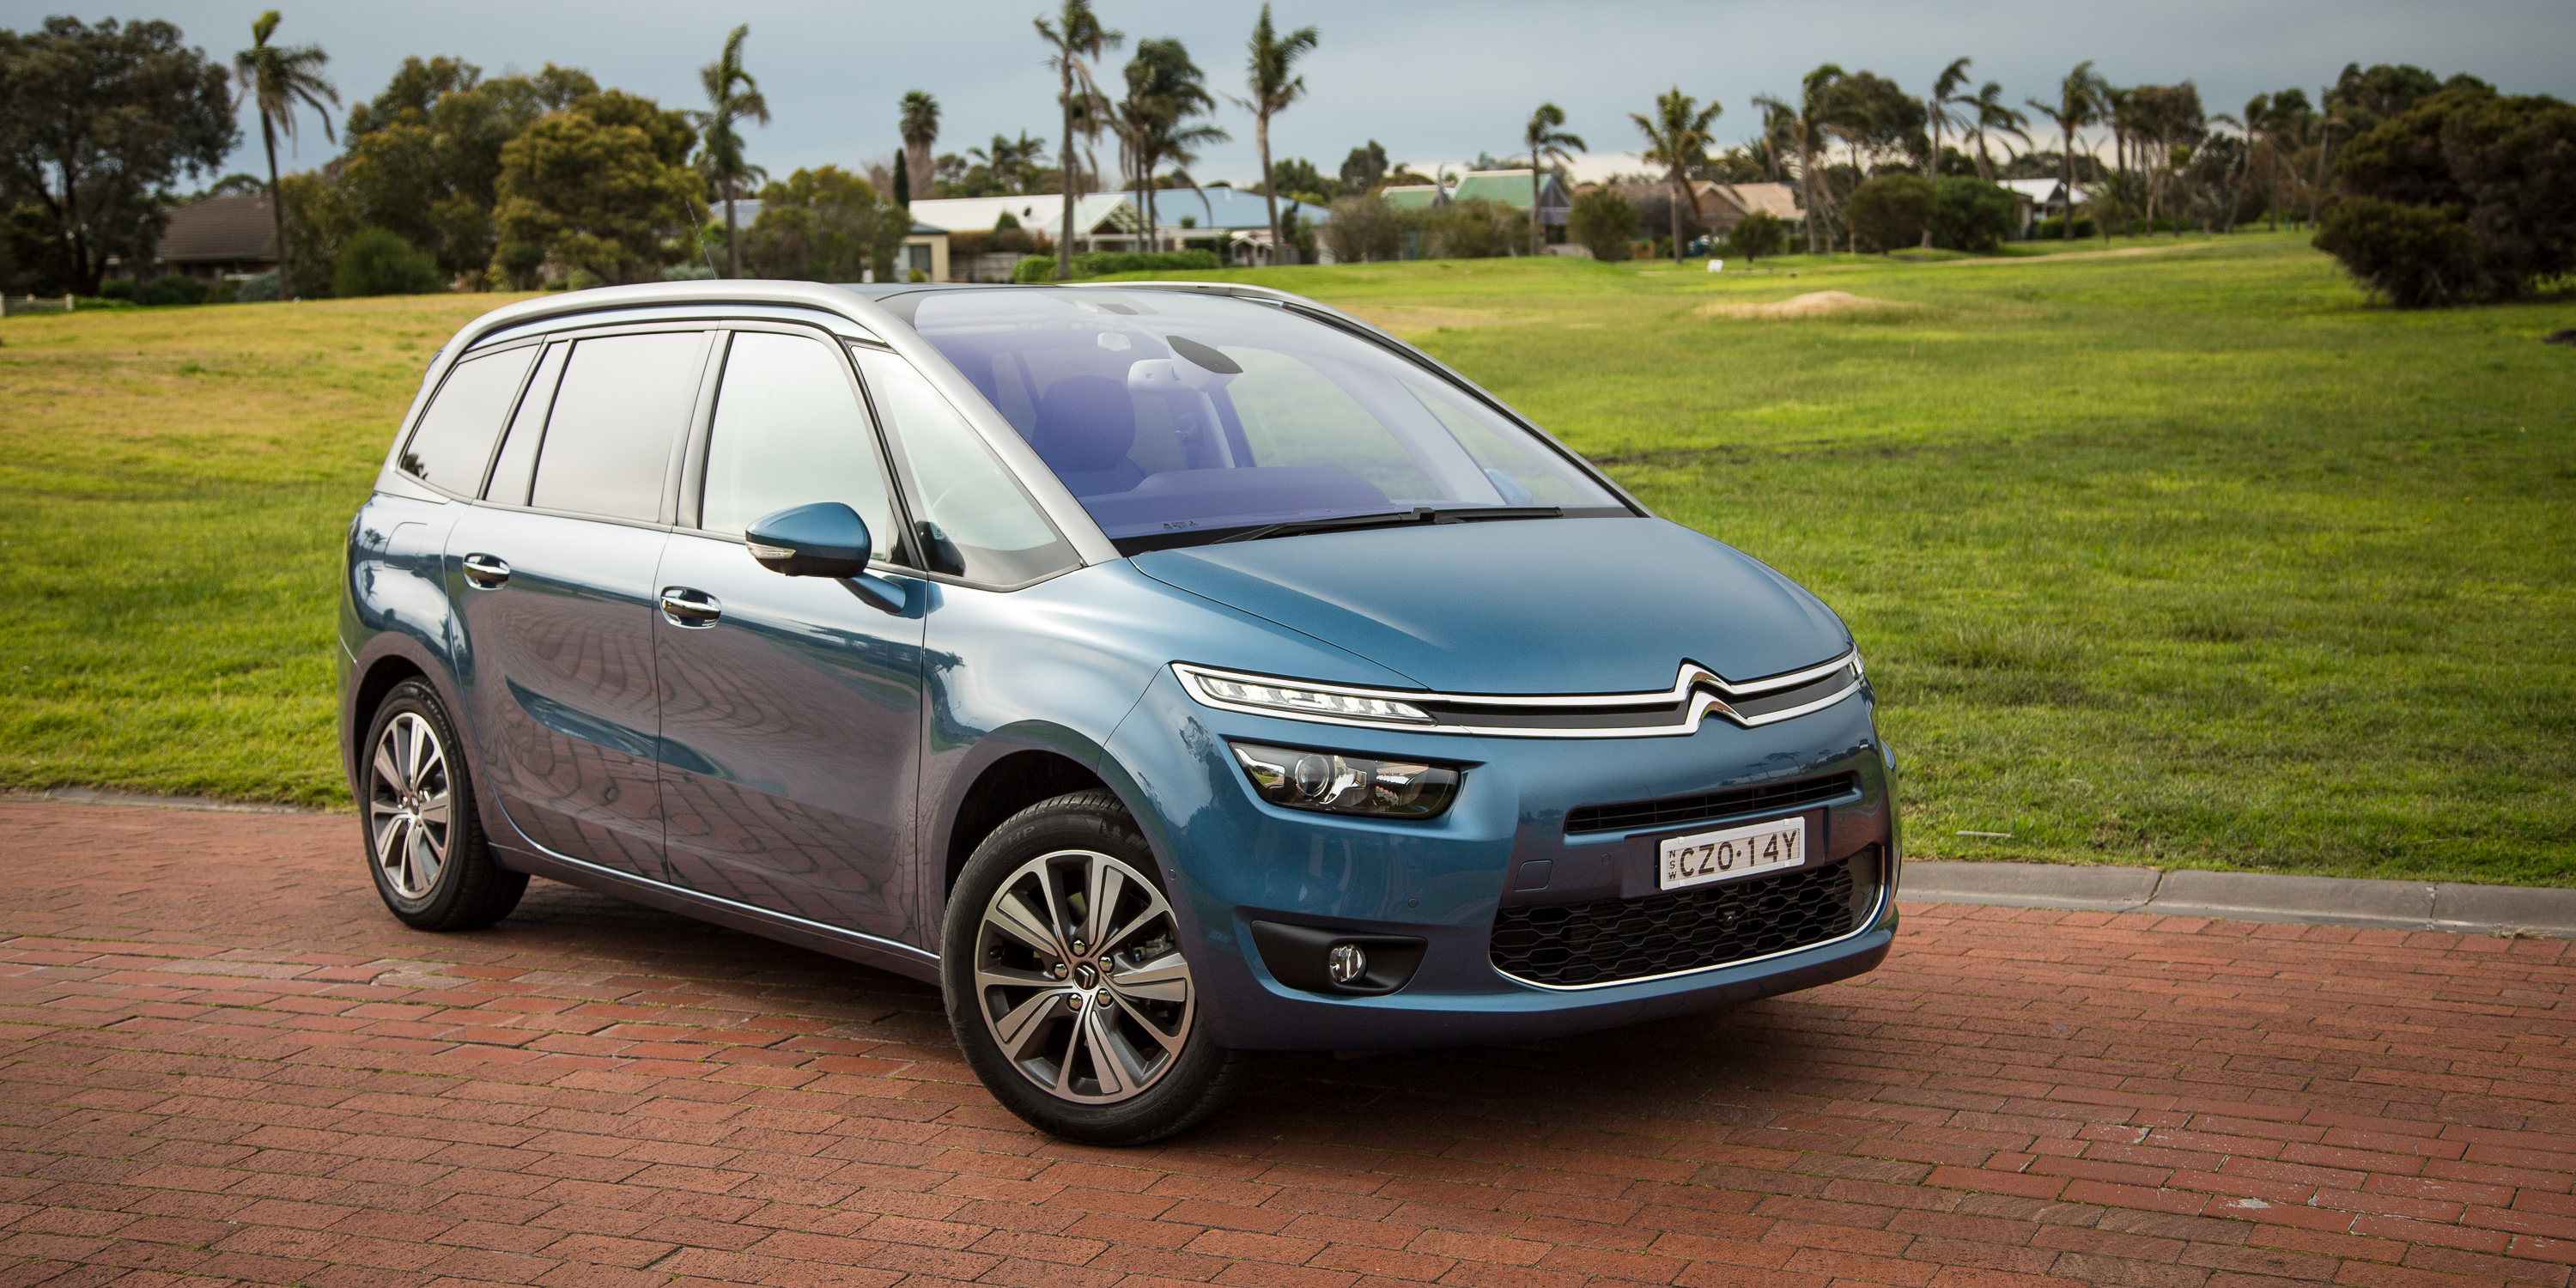 2016 citroen grand c4 picasso review caradvice. Black Bedroom Furniture Sets. Home Design Ideas